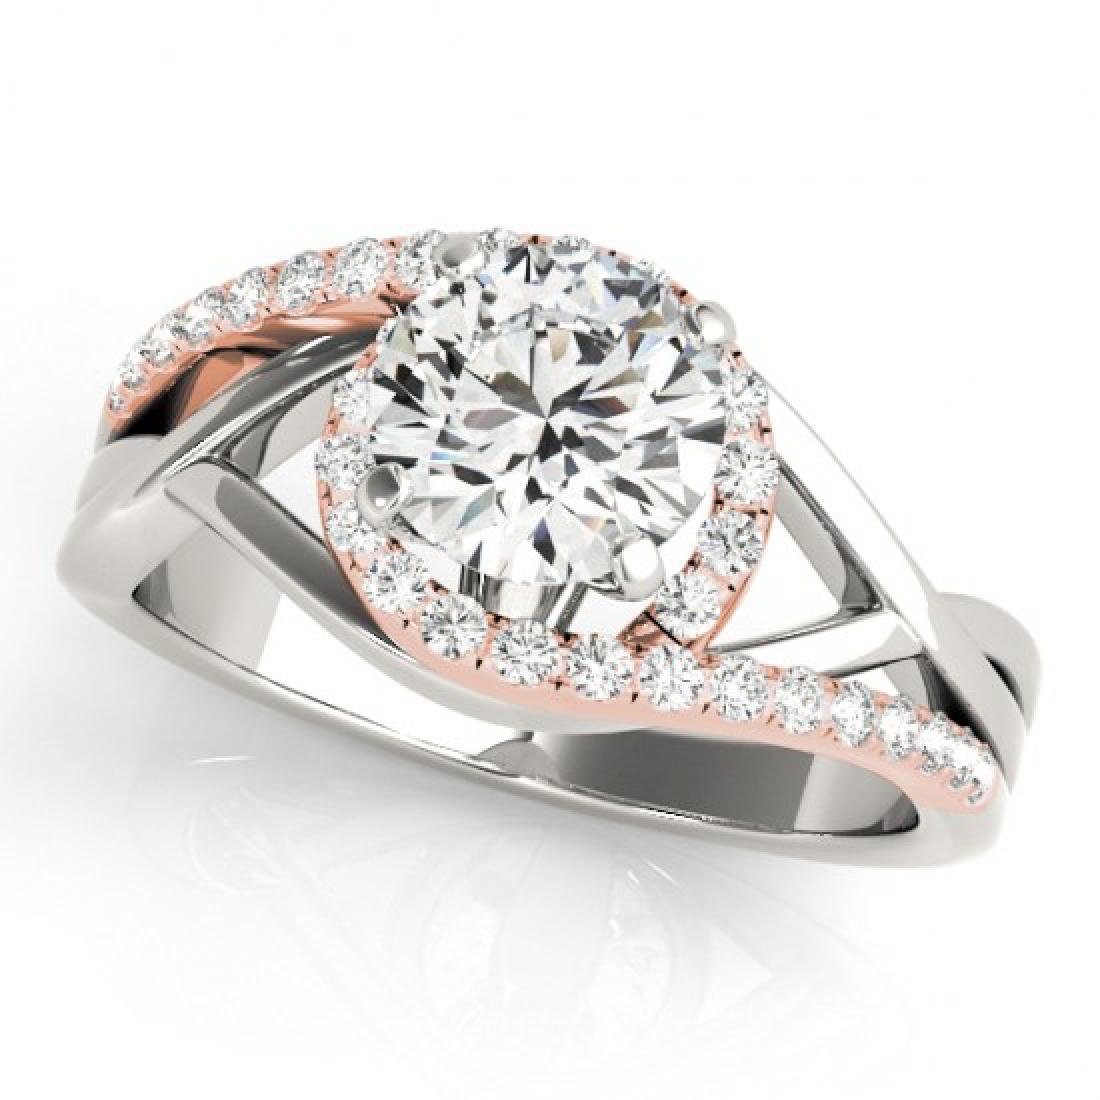 1.8 CTW Certified VS/SI Diamond Bypass Solitaire ring